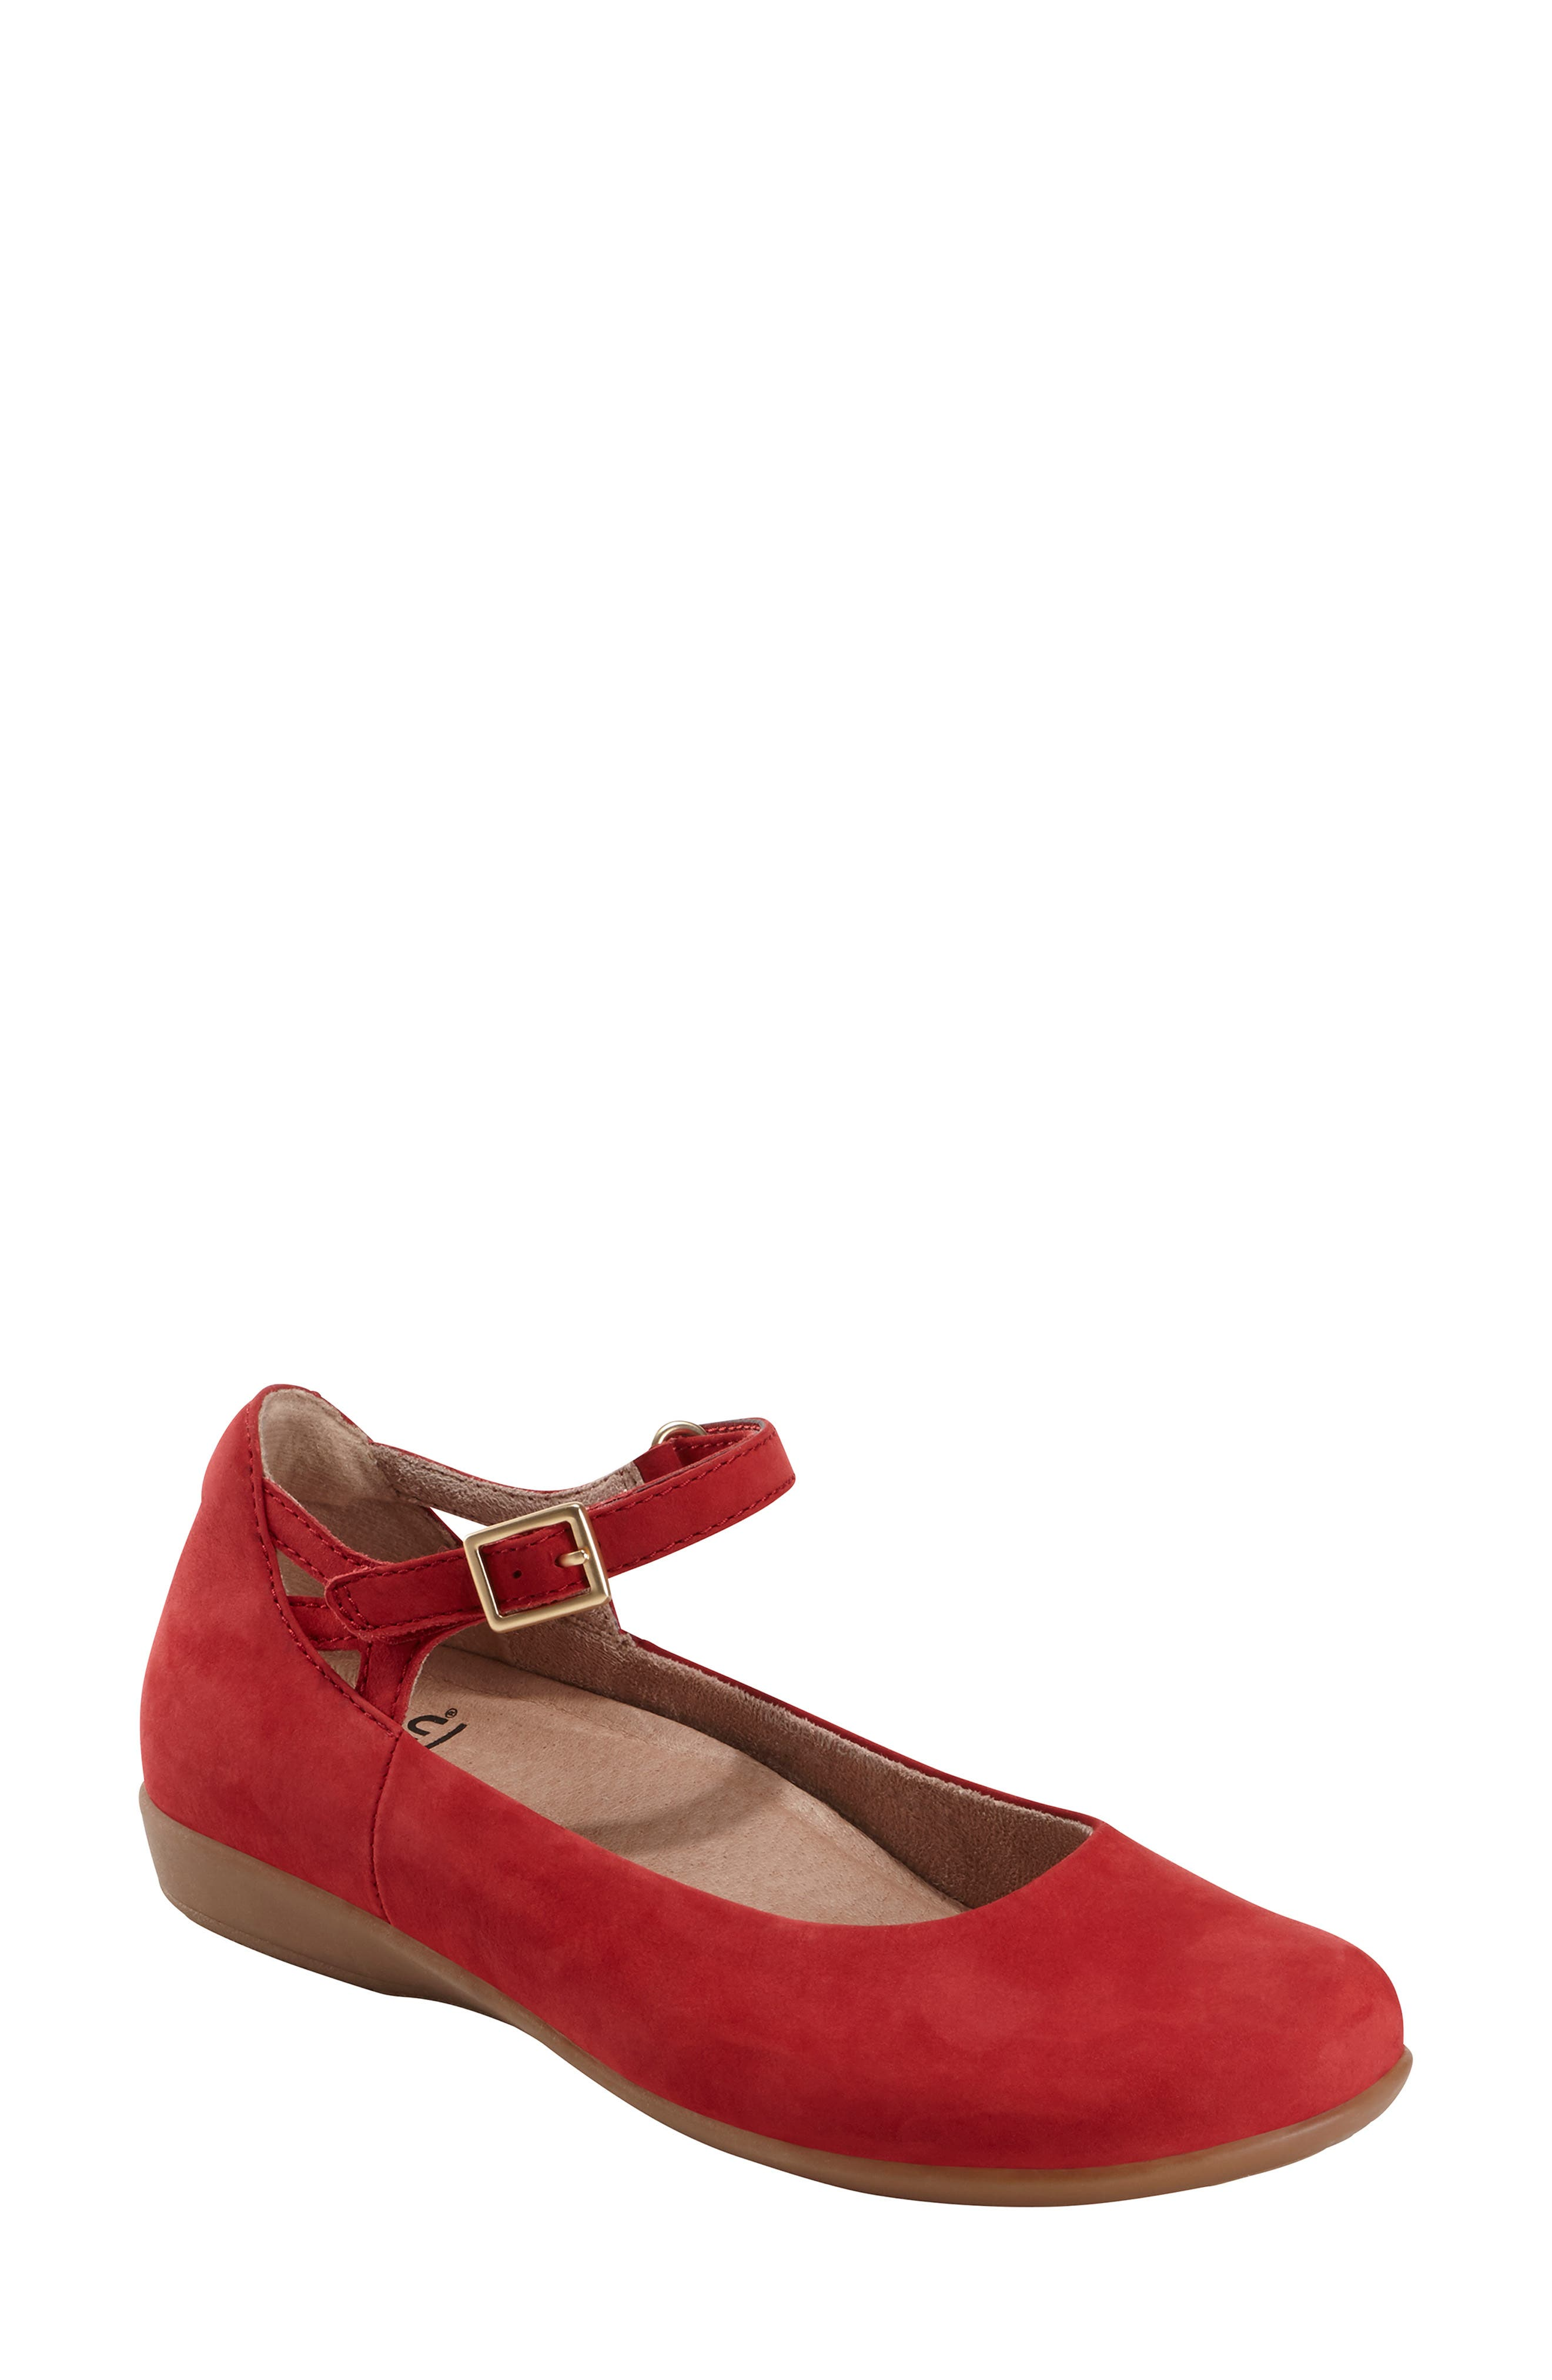 Earth Alma Mary Jane Flat, Red